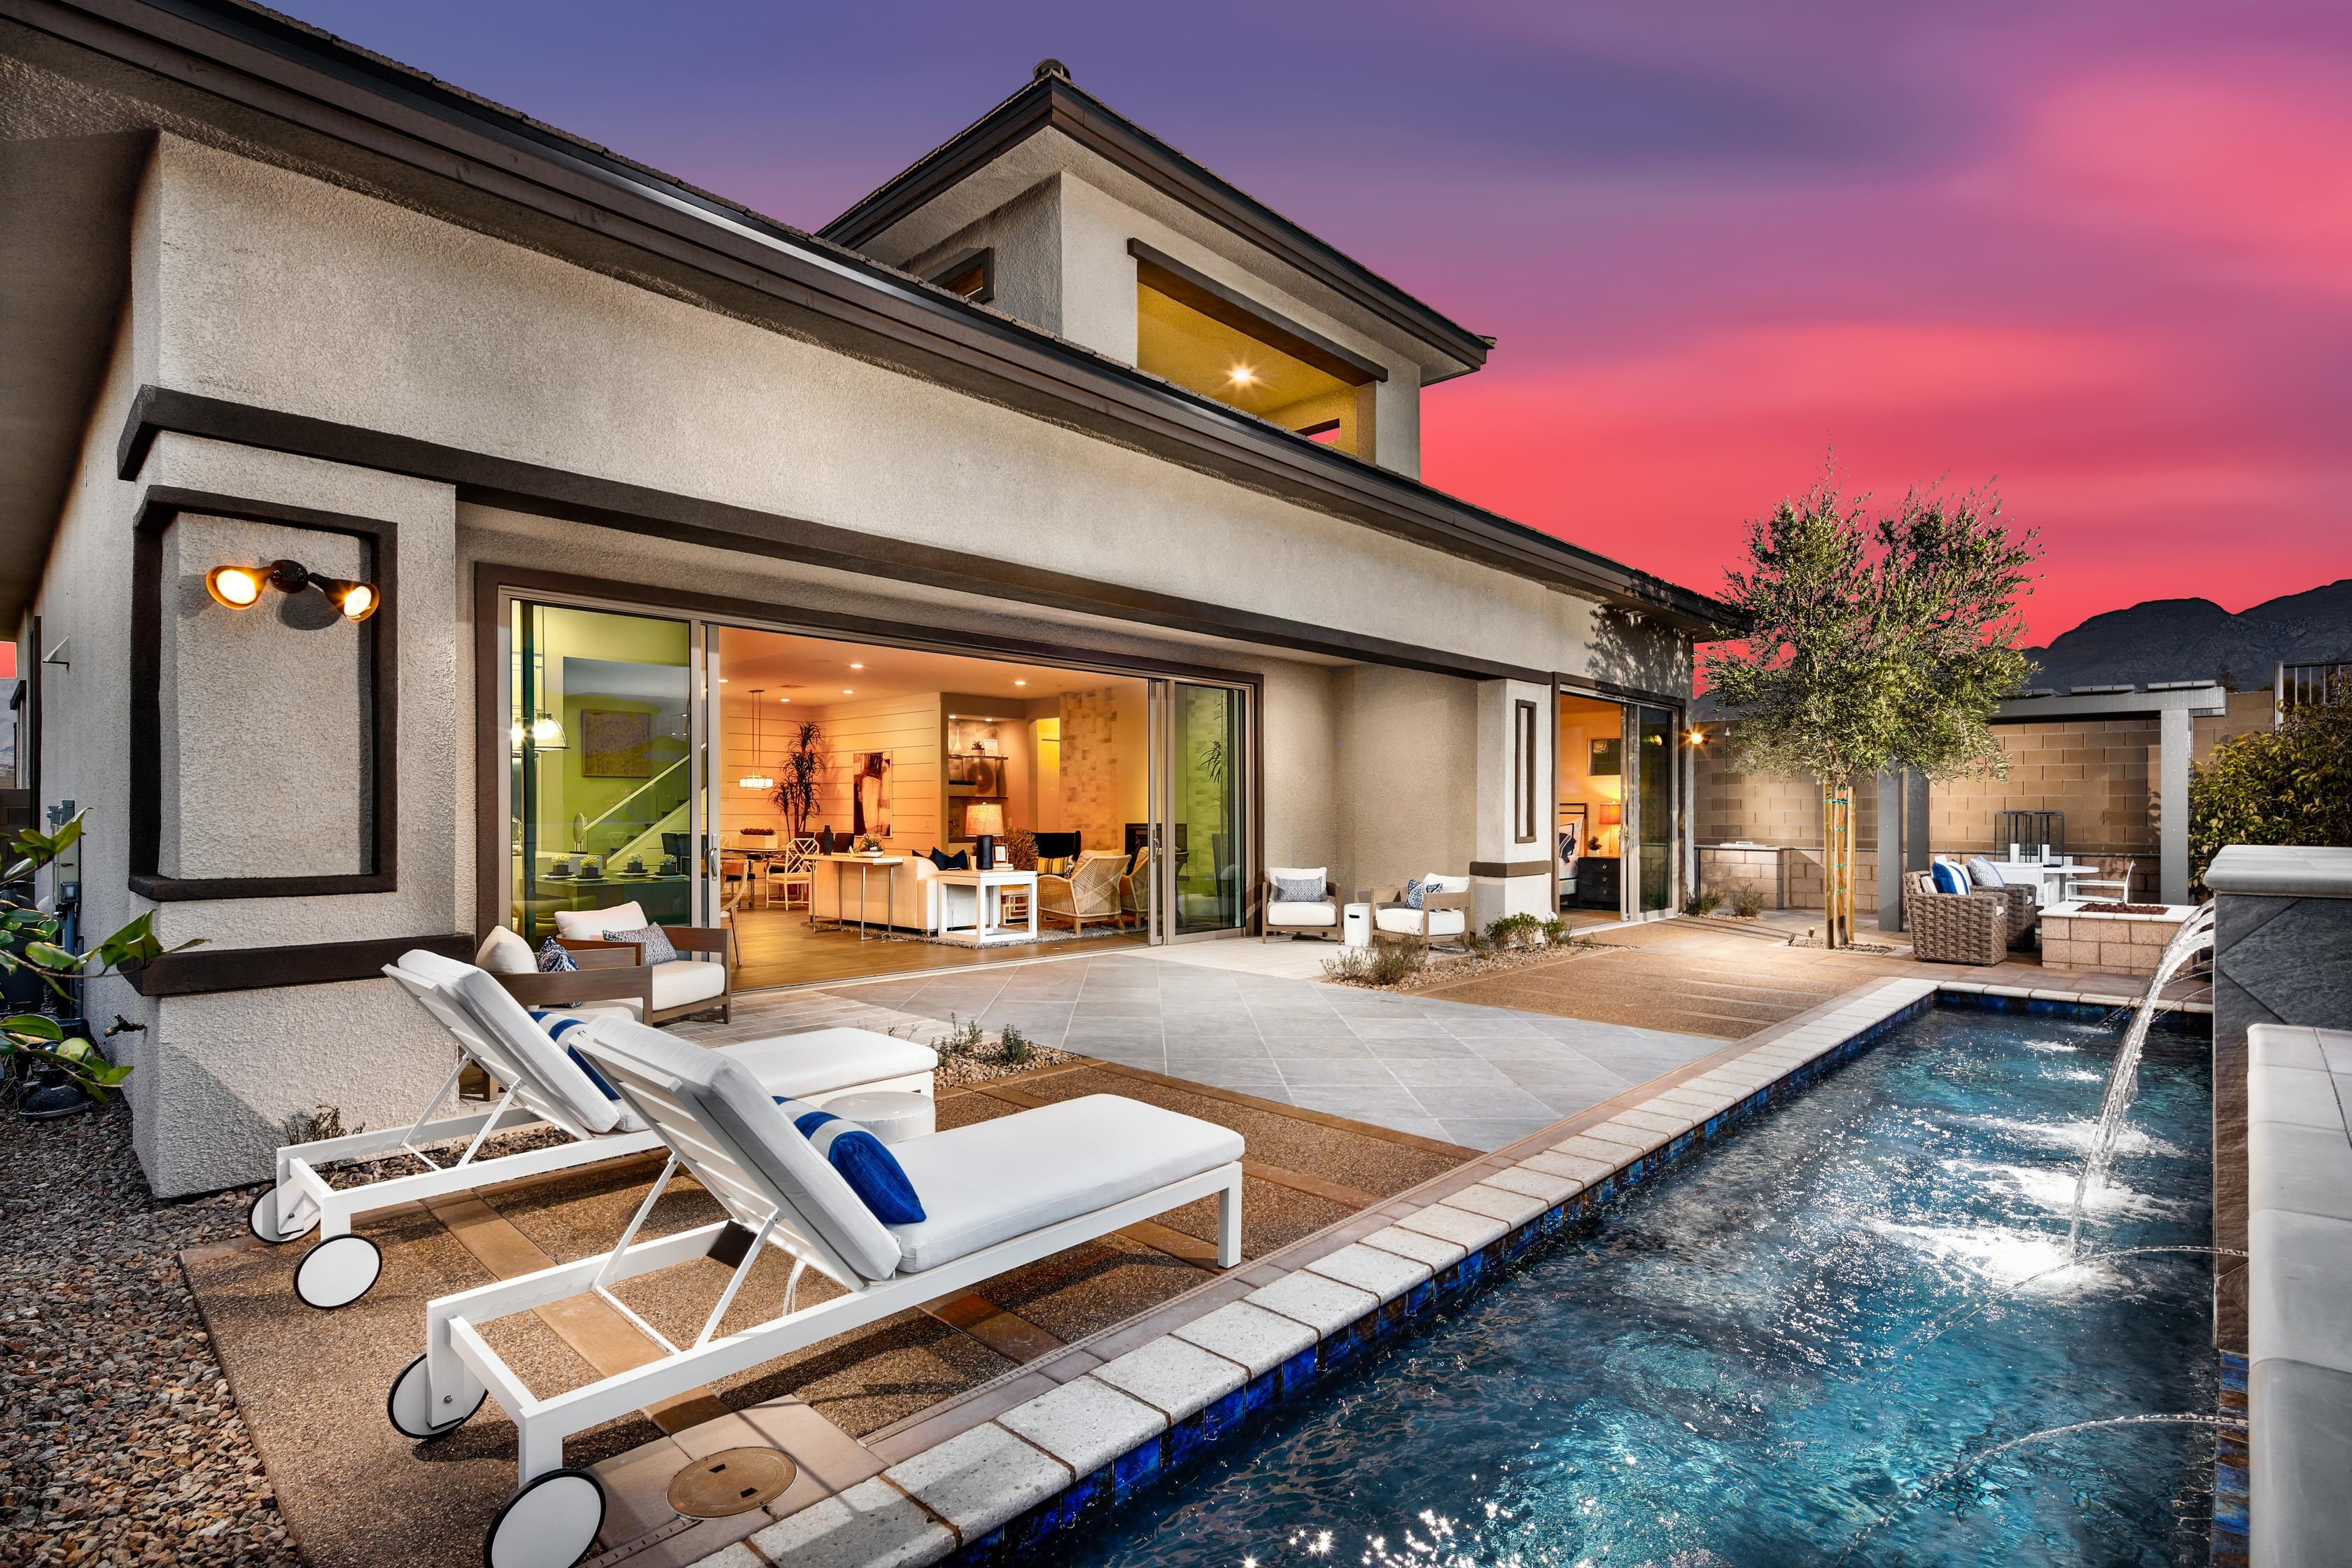 Nothing But Fun Under The Sun In This Inspiring Backyard From Shadow Point Eclipse Model Home In Las Vegas Nv House Design Luxury Homes Custom Pools